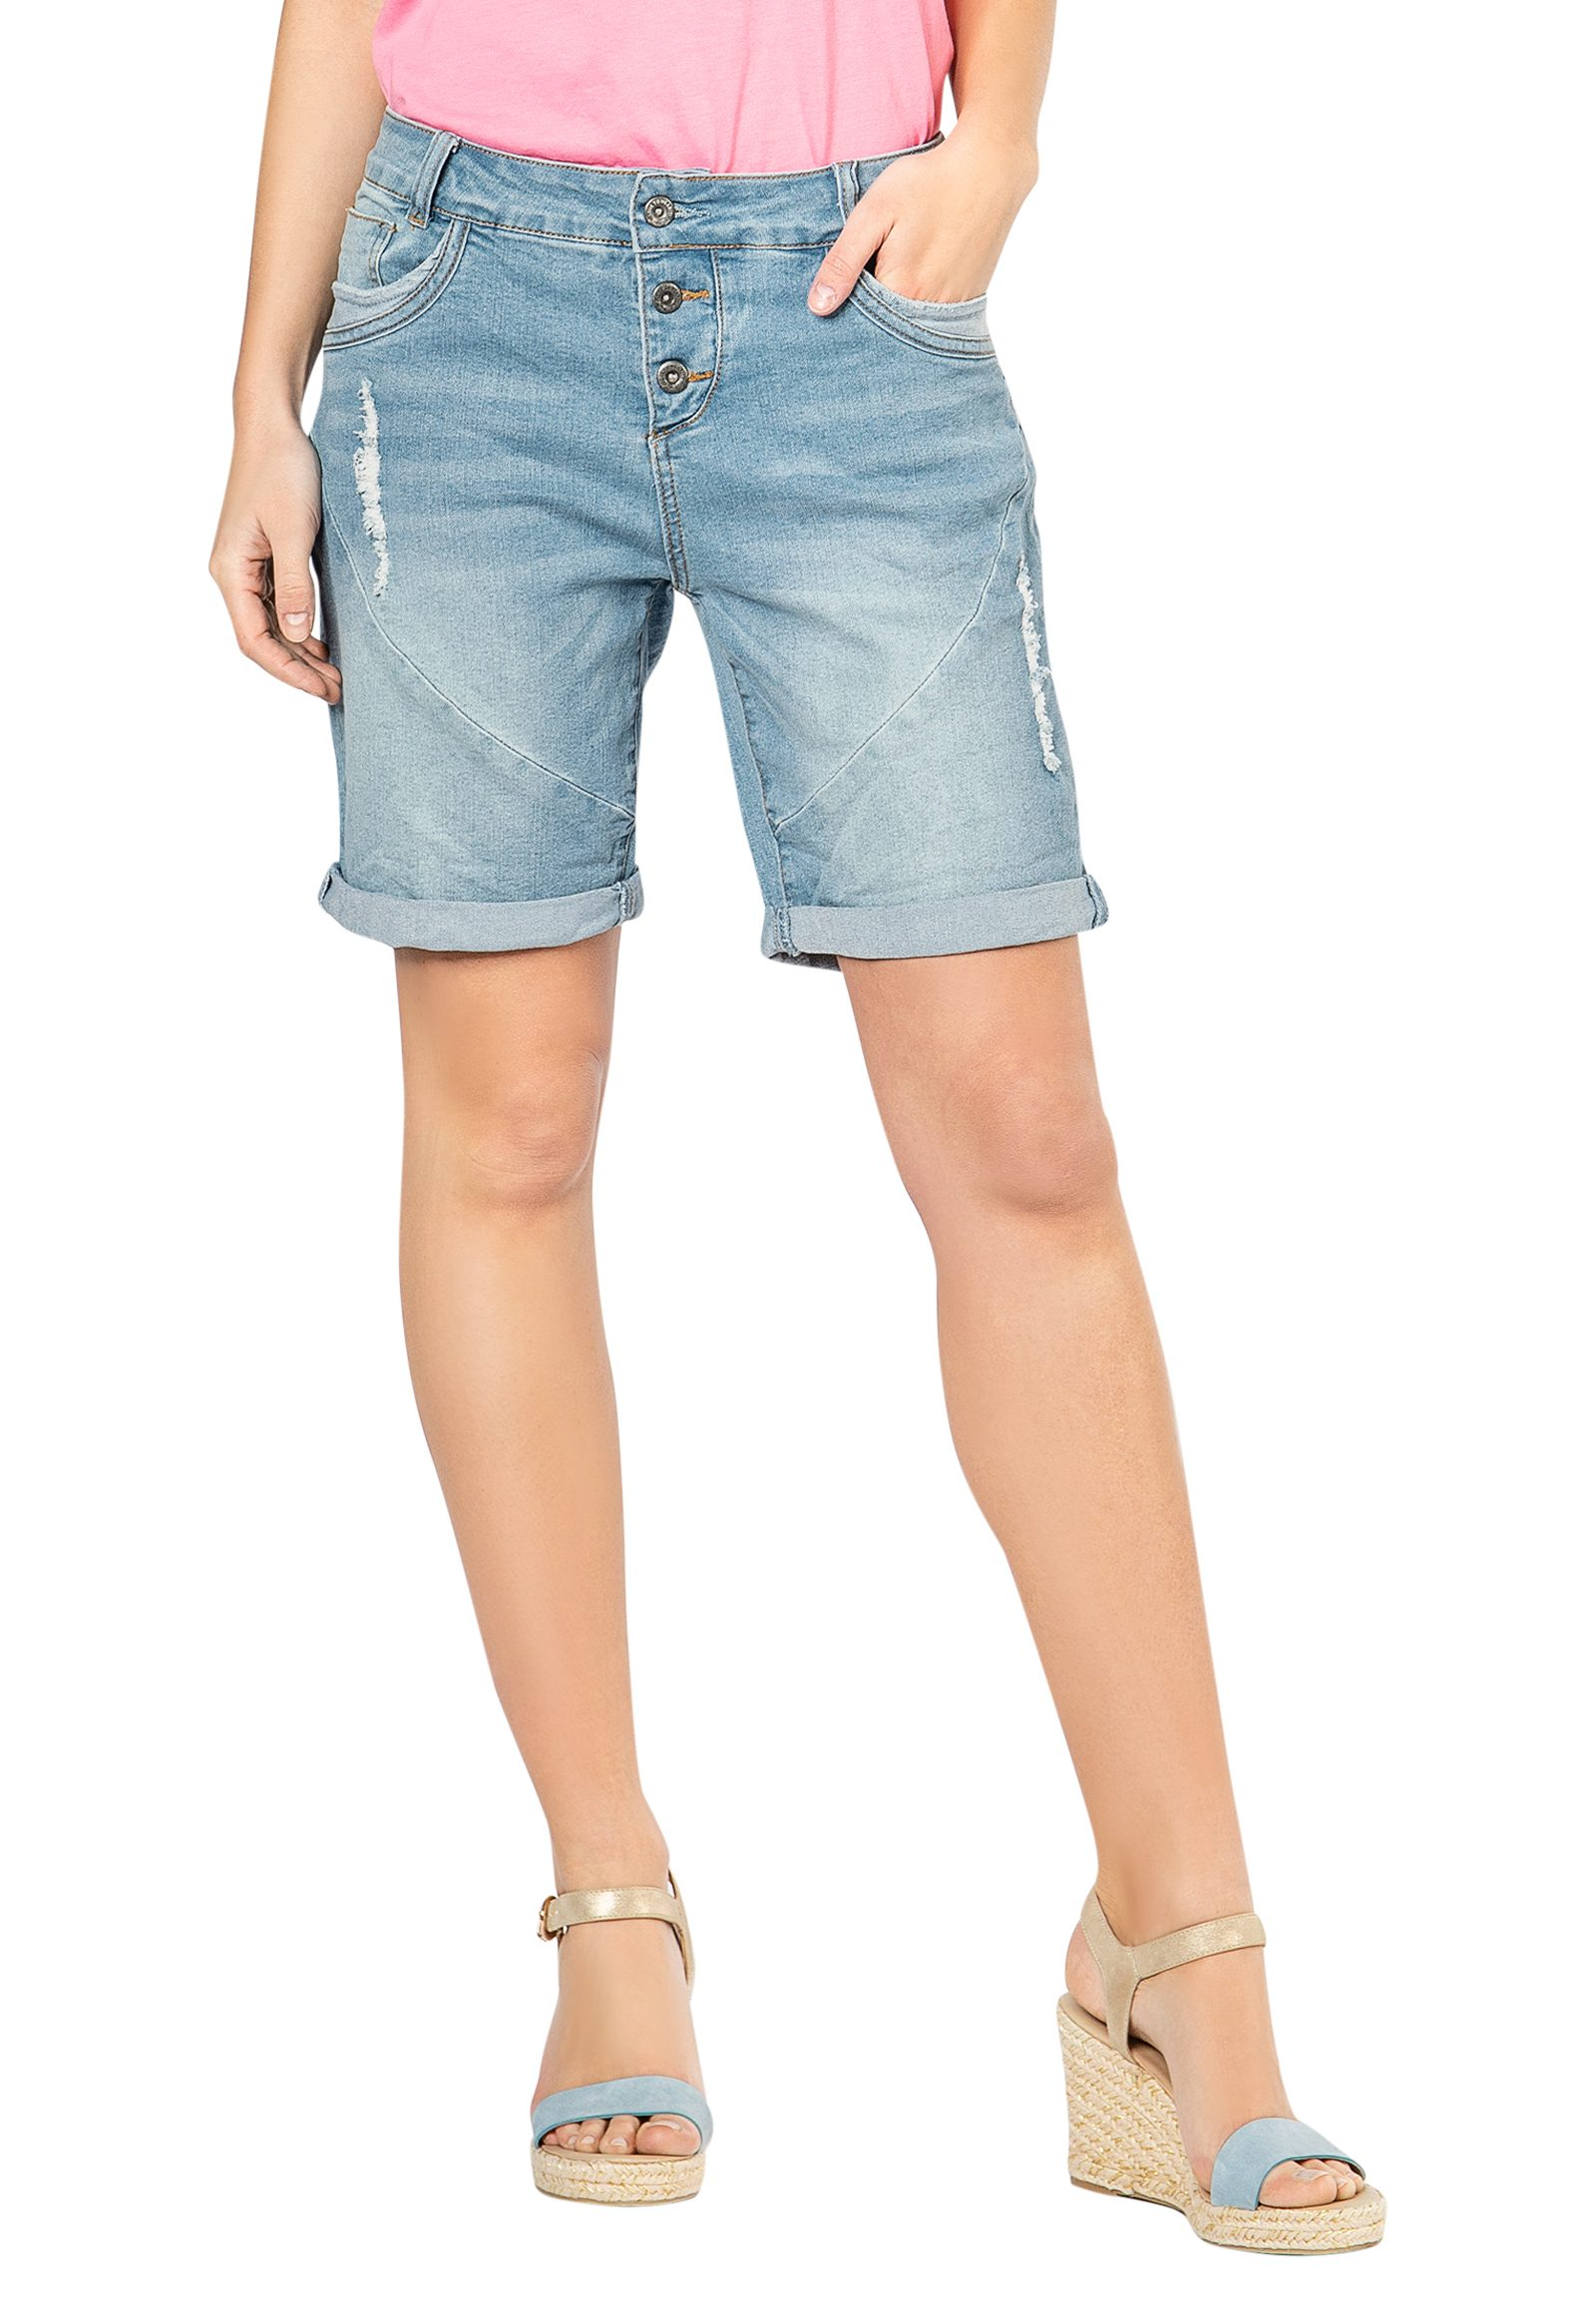 Hosen - Damen Jeans Bermuda › Fresh Made › blau  - Onlineshop FASHION5